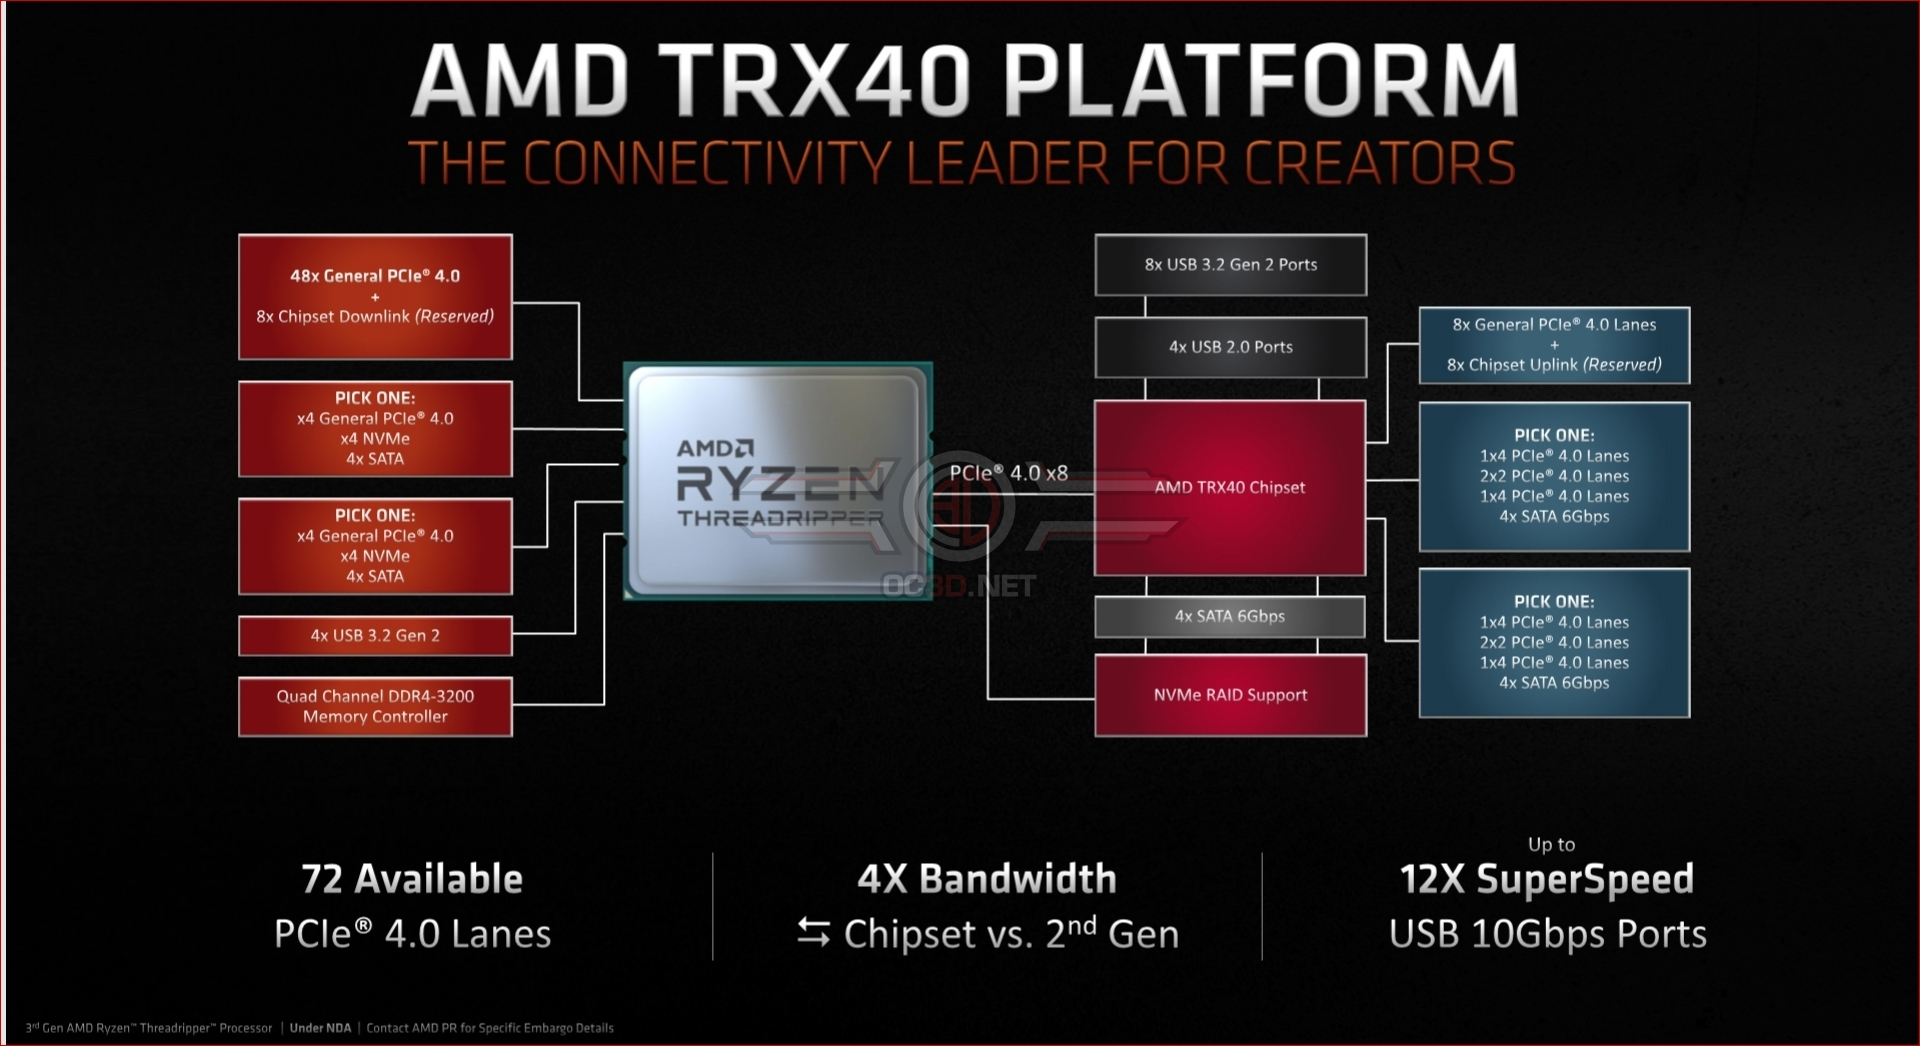 Amd S New Threadripper Processors Deliver A Staggering Generational Leap Specs Revealed Oc3d News